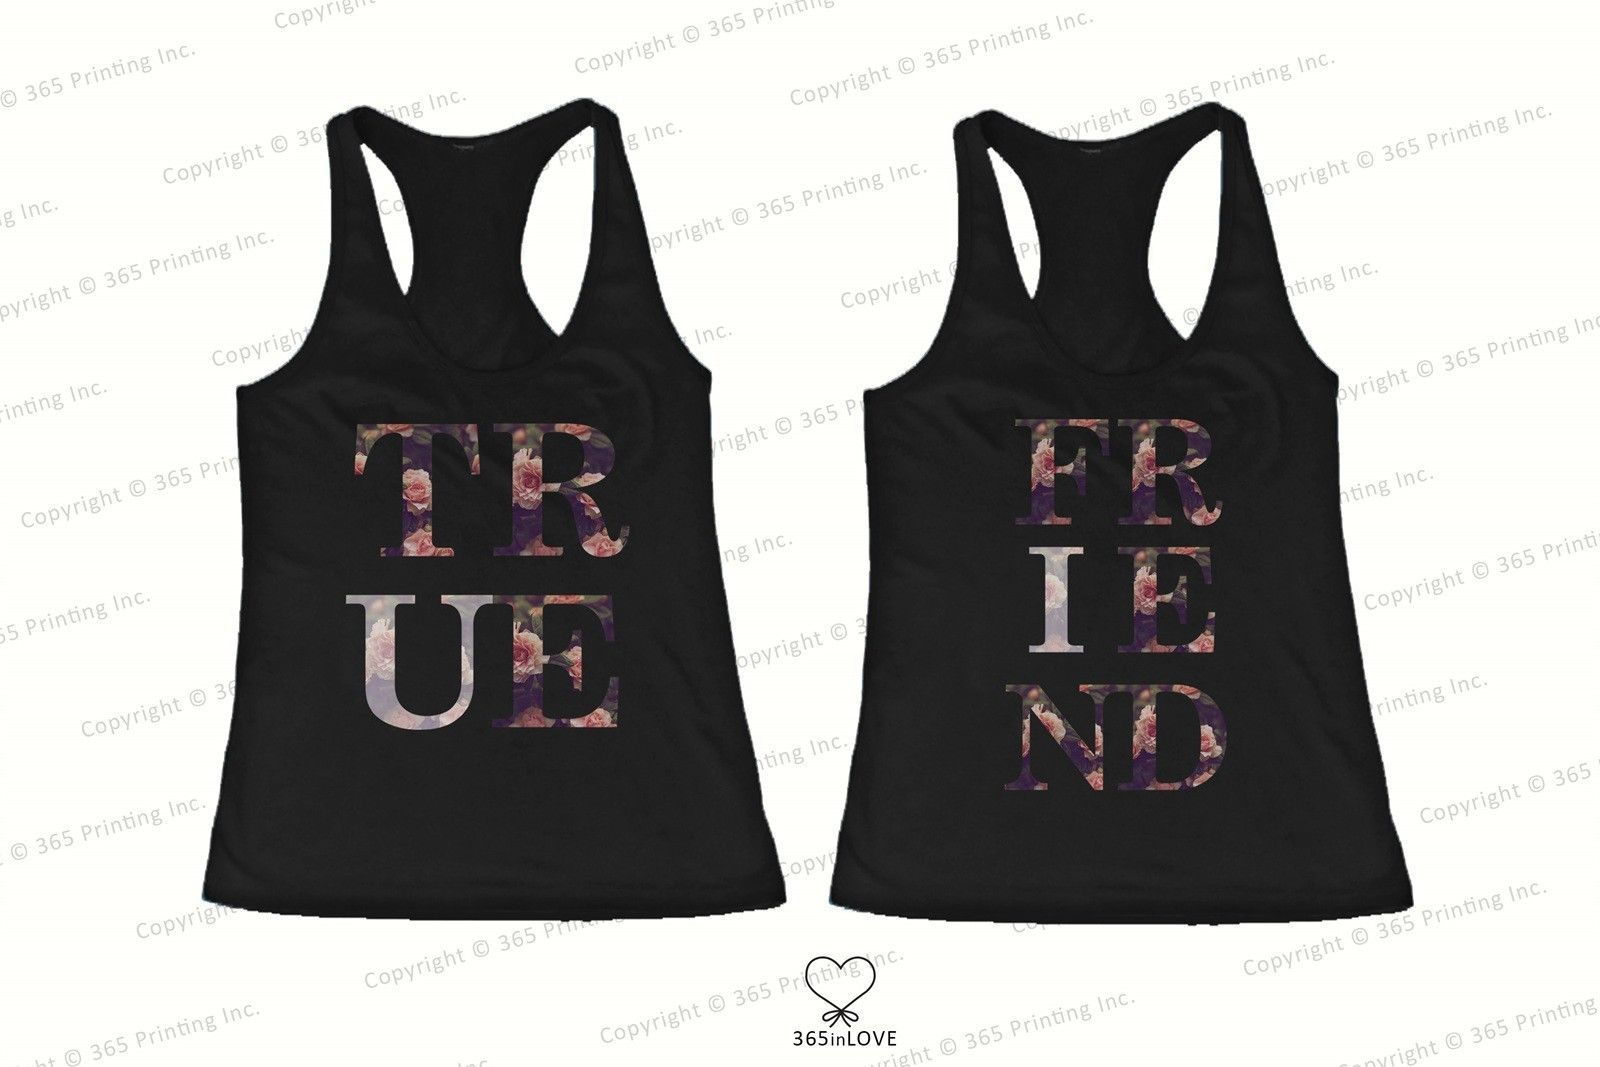 Primary image for Best Friend Matching Tank Tops - True Friend Floral Print Tank Tops for BFF